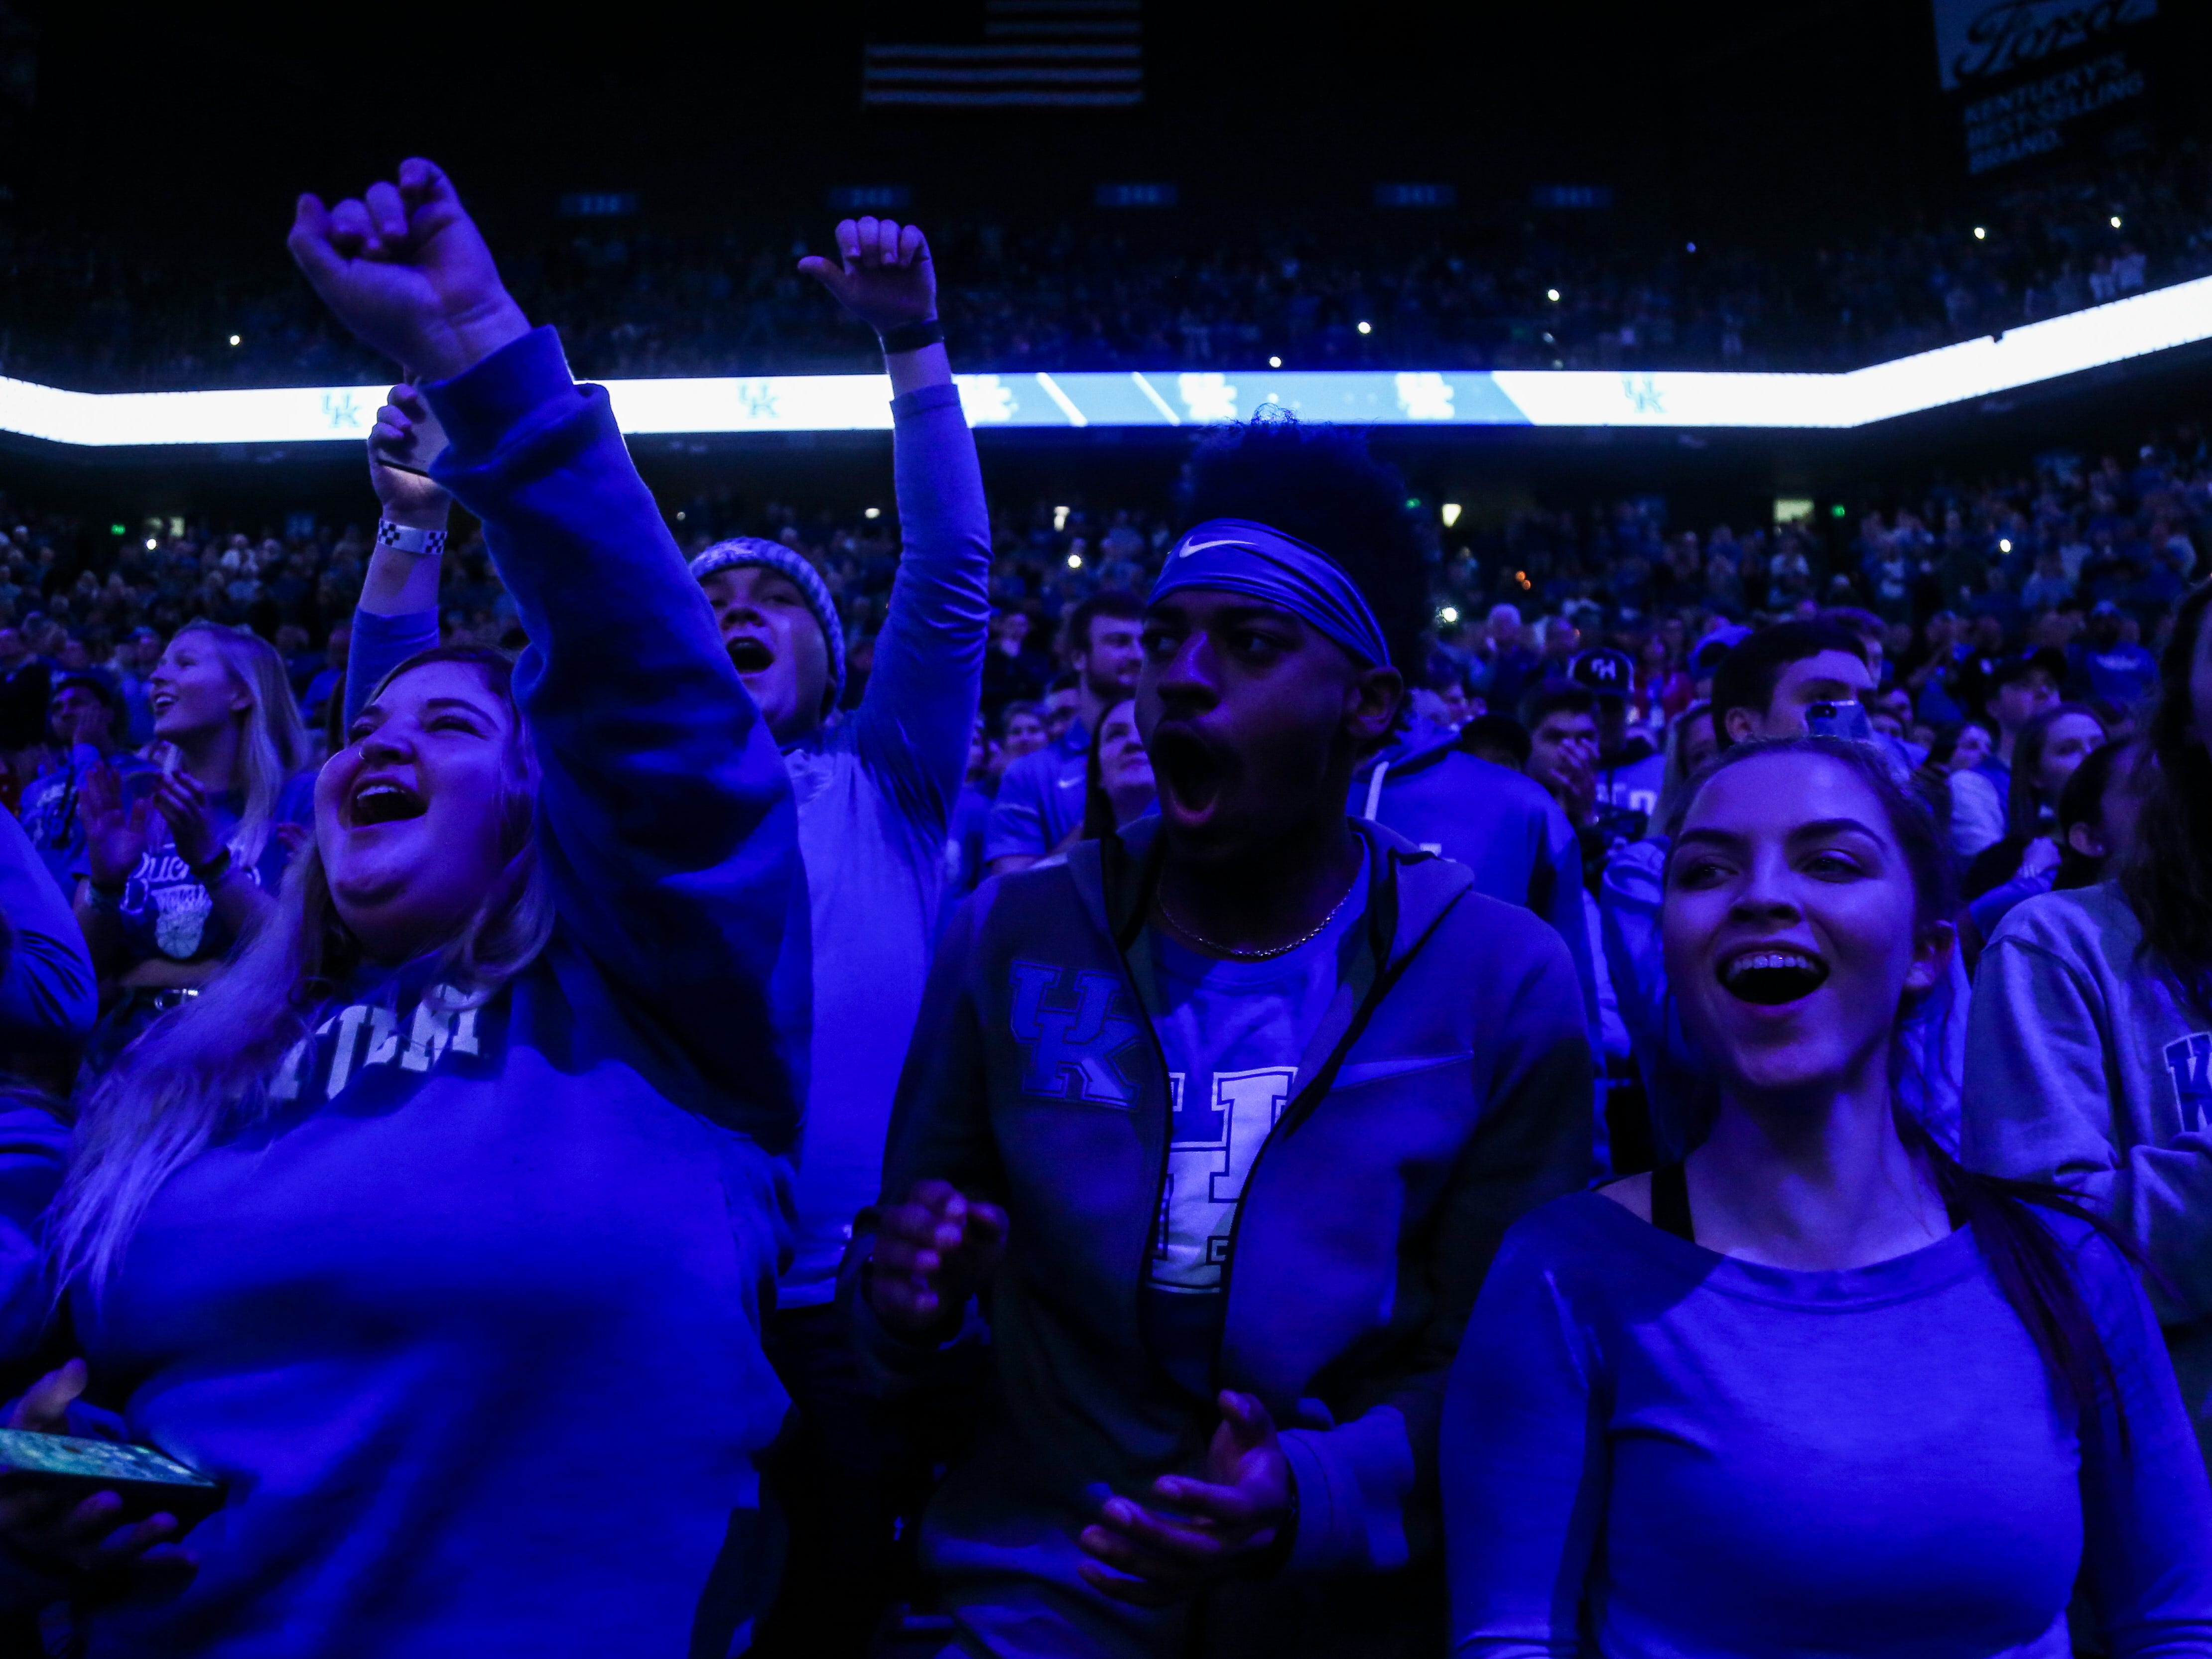 Kentucky students cheer before the game against Mississippi State Tuesday night at Rupp Arena in Lexington. January 22, 2019